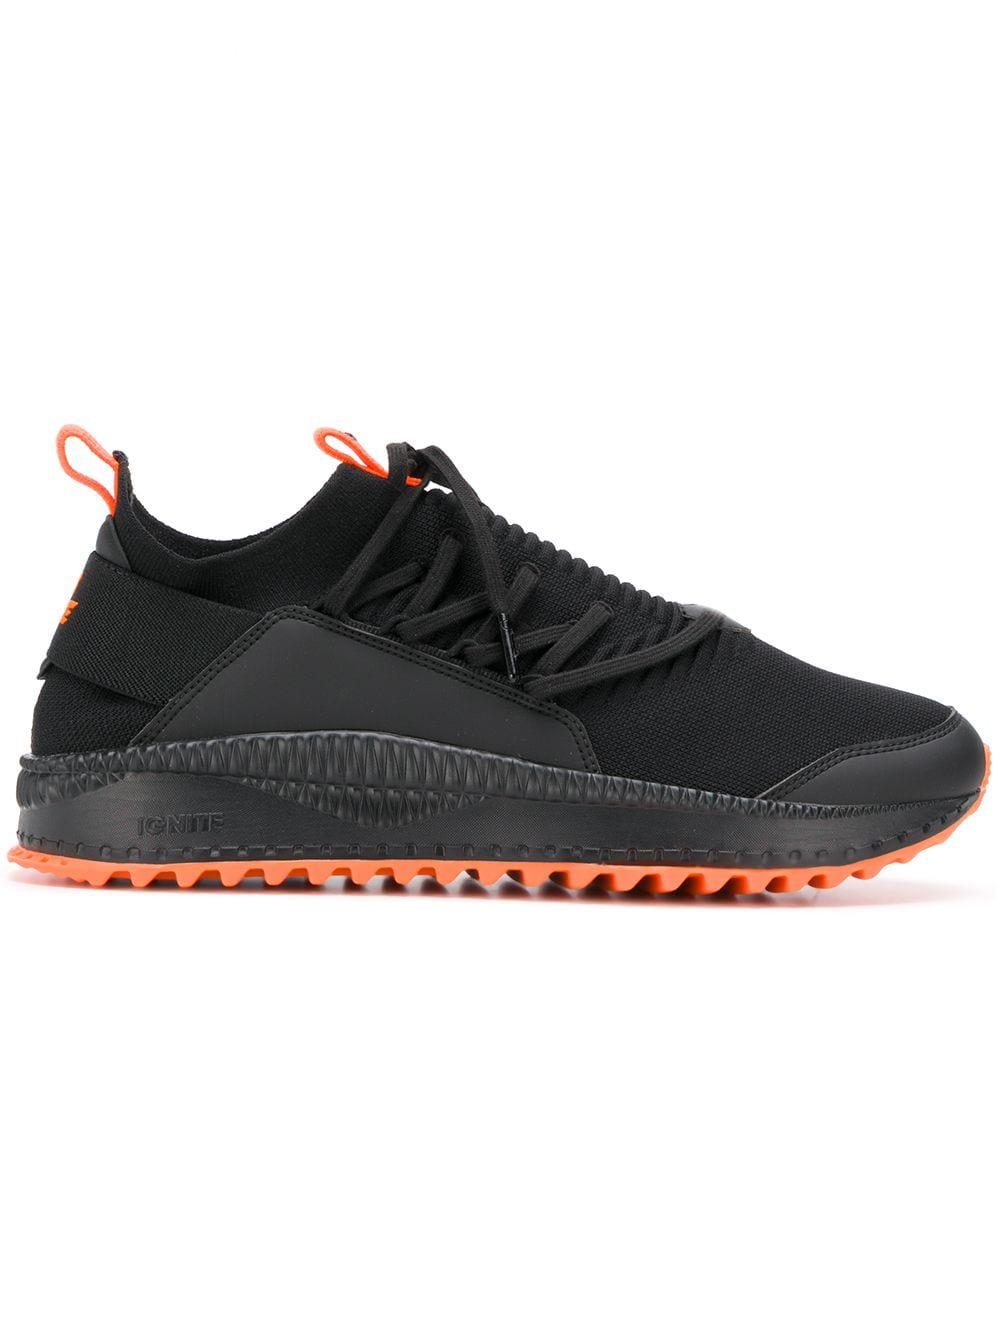 0eb20633c78 Puma X Atelier New Regime Tsugi Jun Sneakers - Black